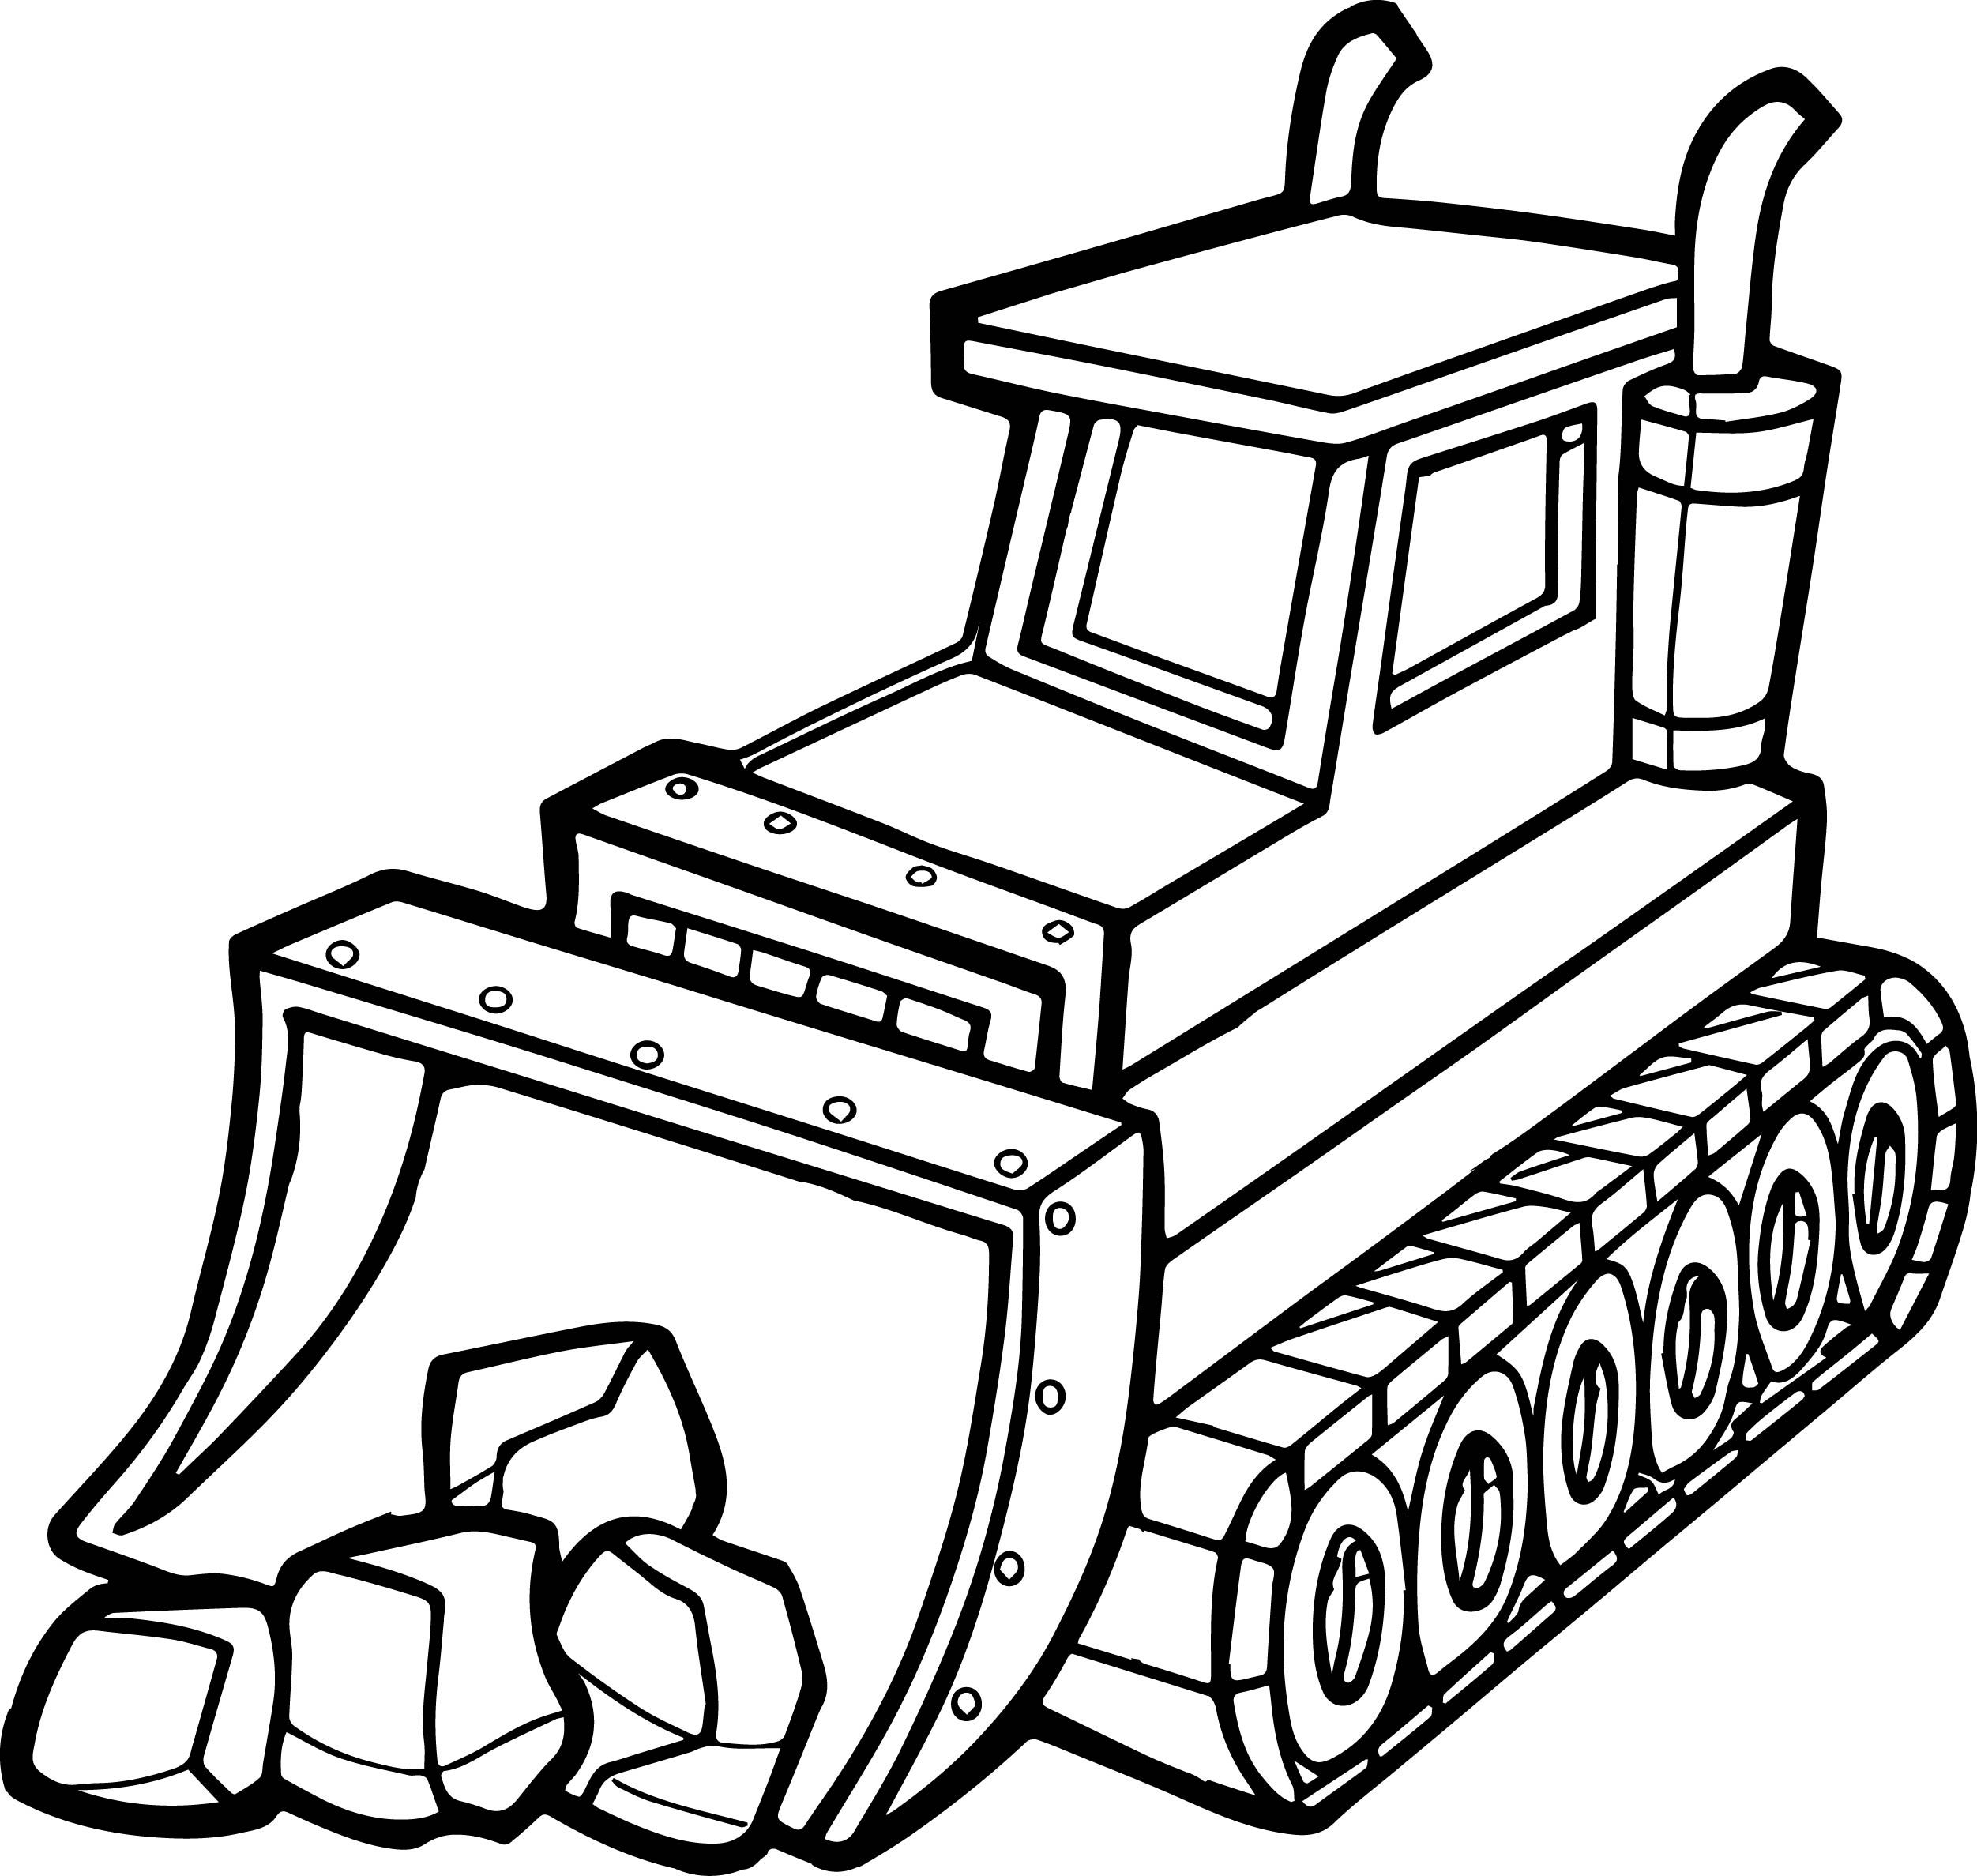 Cool Best Stone Shovel Bulldozer Coloring Page Truck Coloring Pages Tractor Coloring Pages Coloring Pages